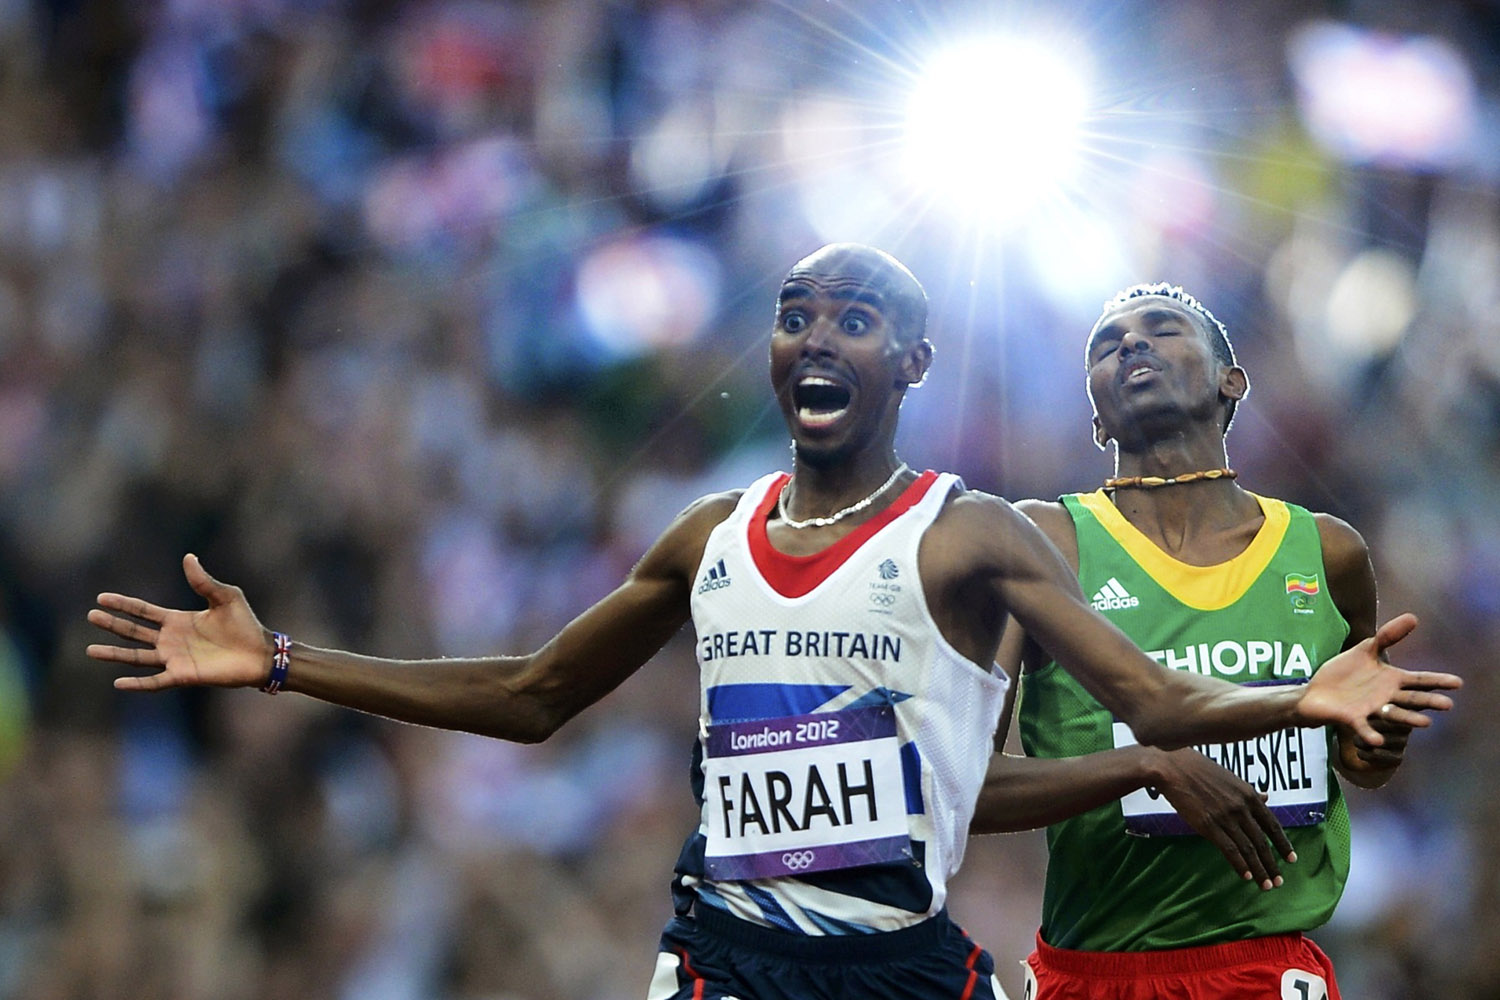 Aug. 11, 2012. Britain's Mo Farah reacts as he wins the men's 5000m final ahead of Ethiopia's Dejen Gebremeskel at the London 2012 Olympic Games at the Olympic Stadium.